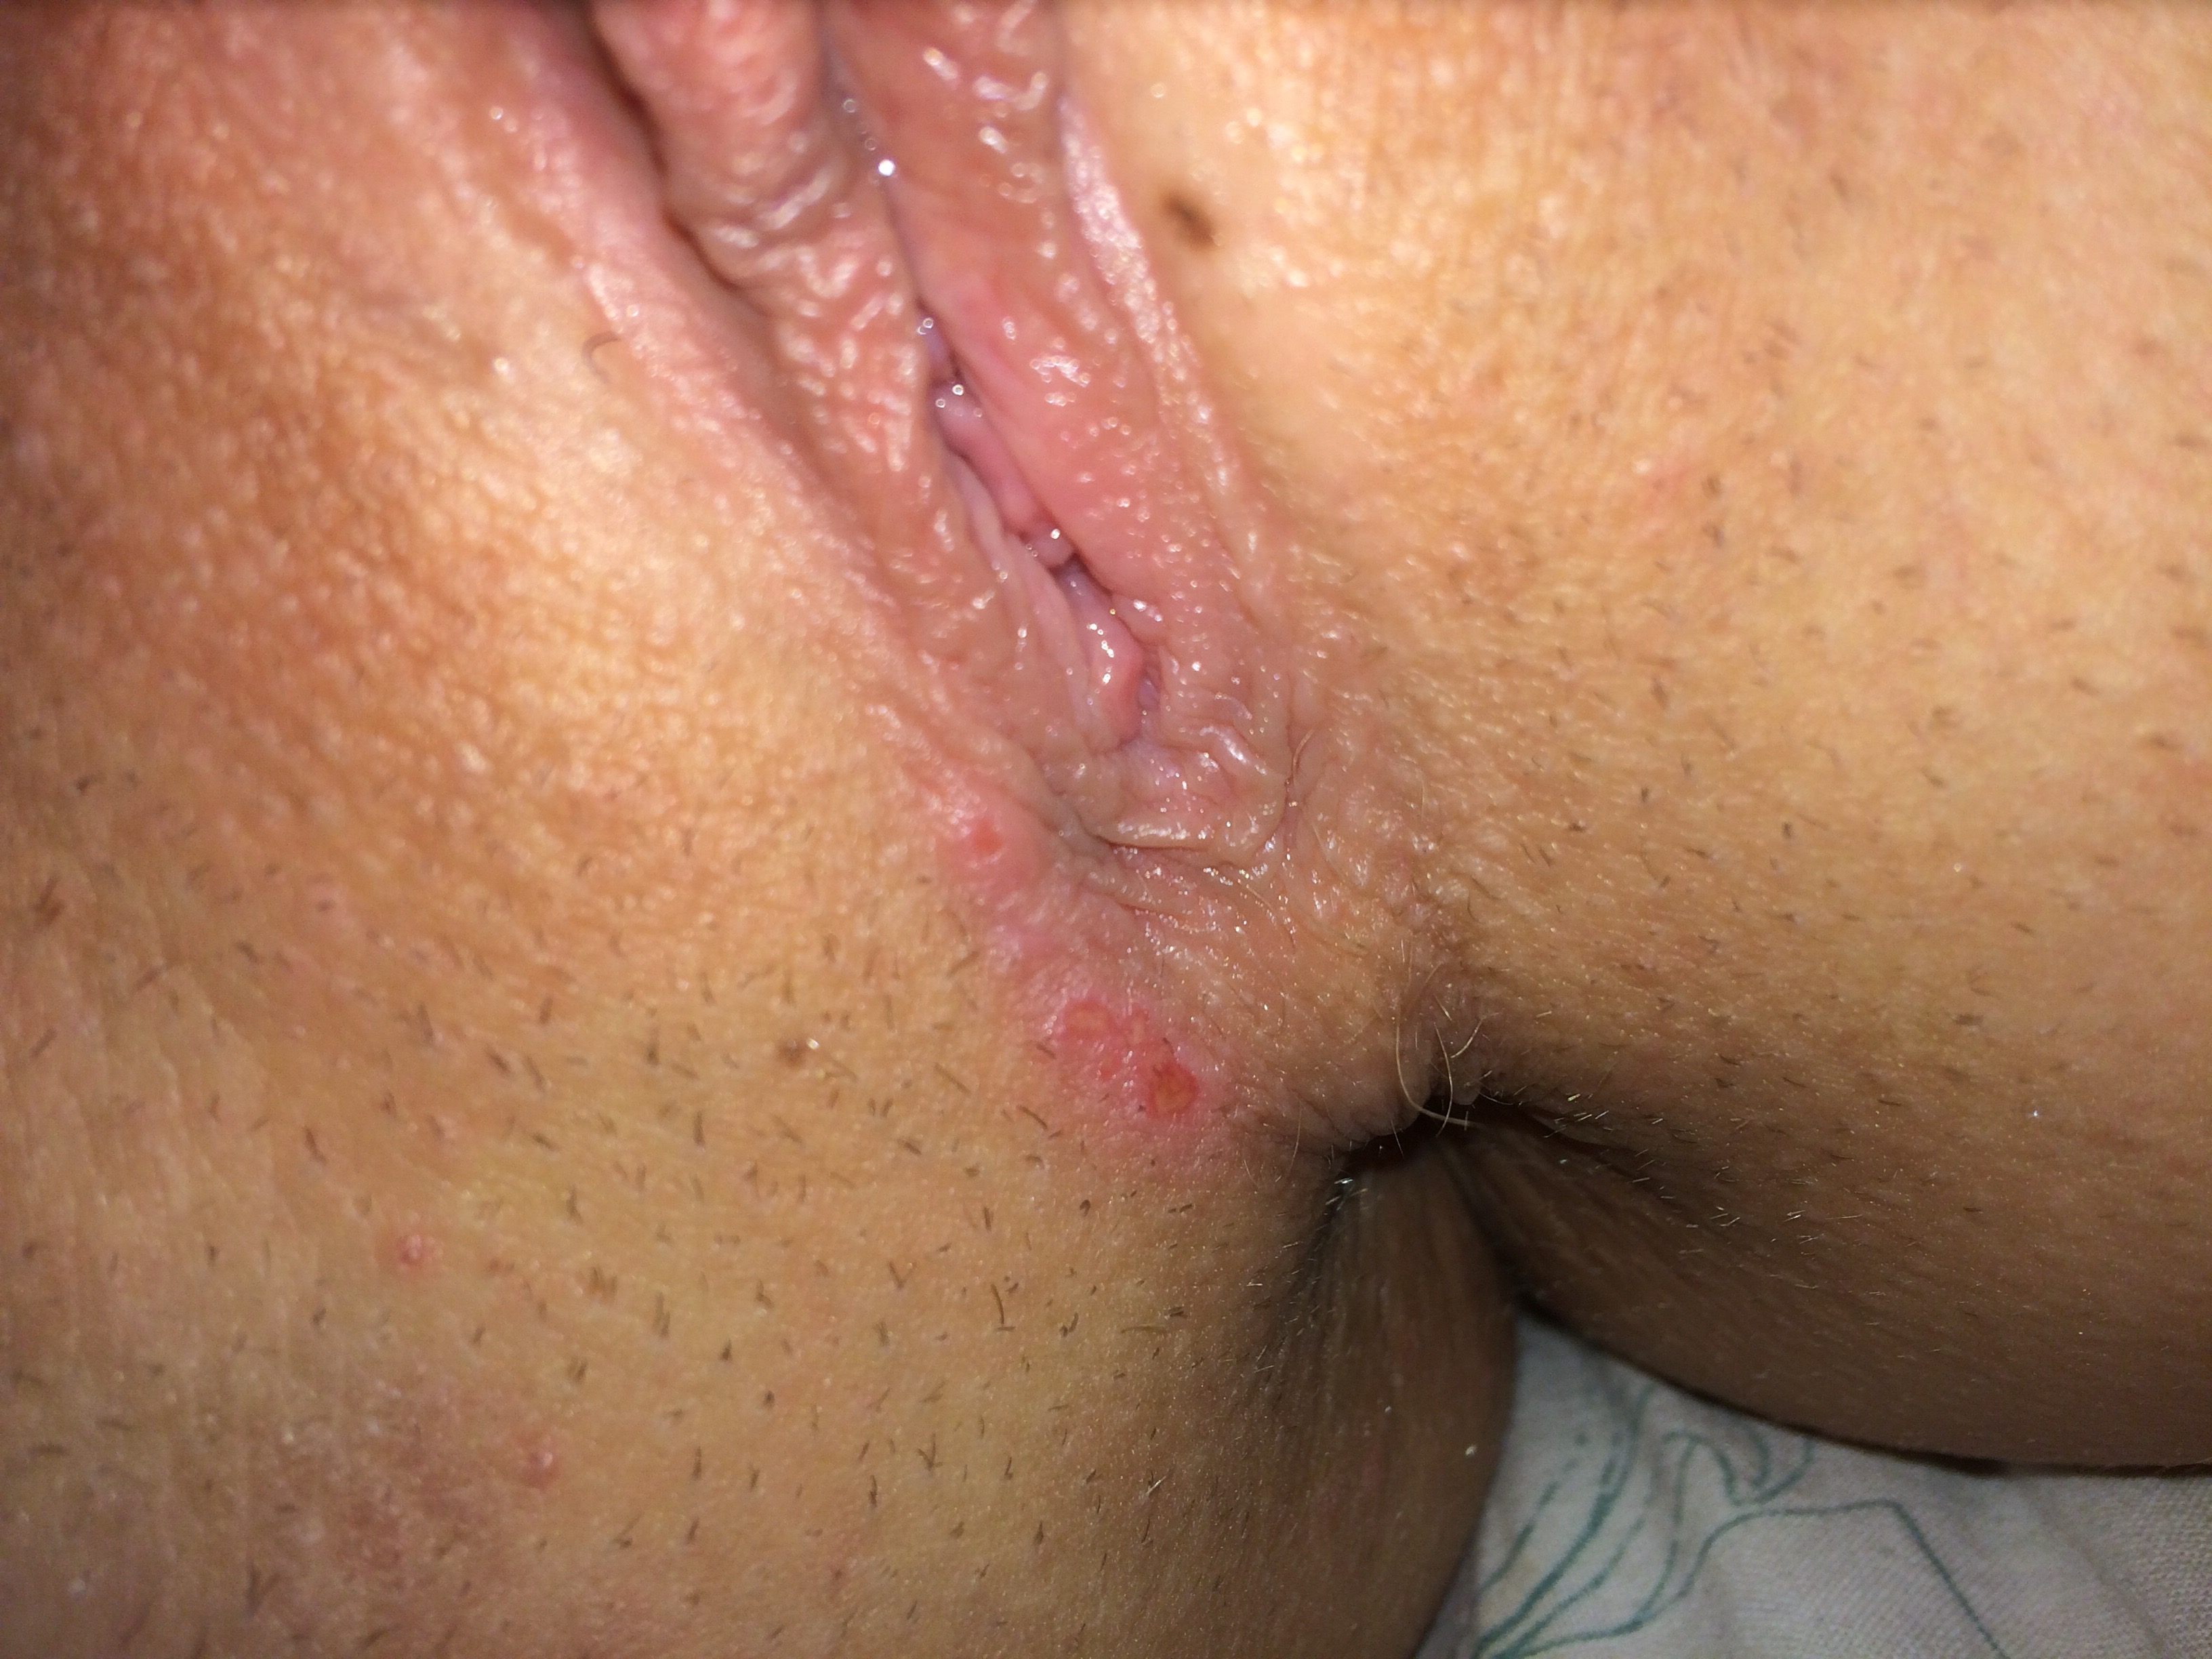 Hiv and aids rashes and skin conditions